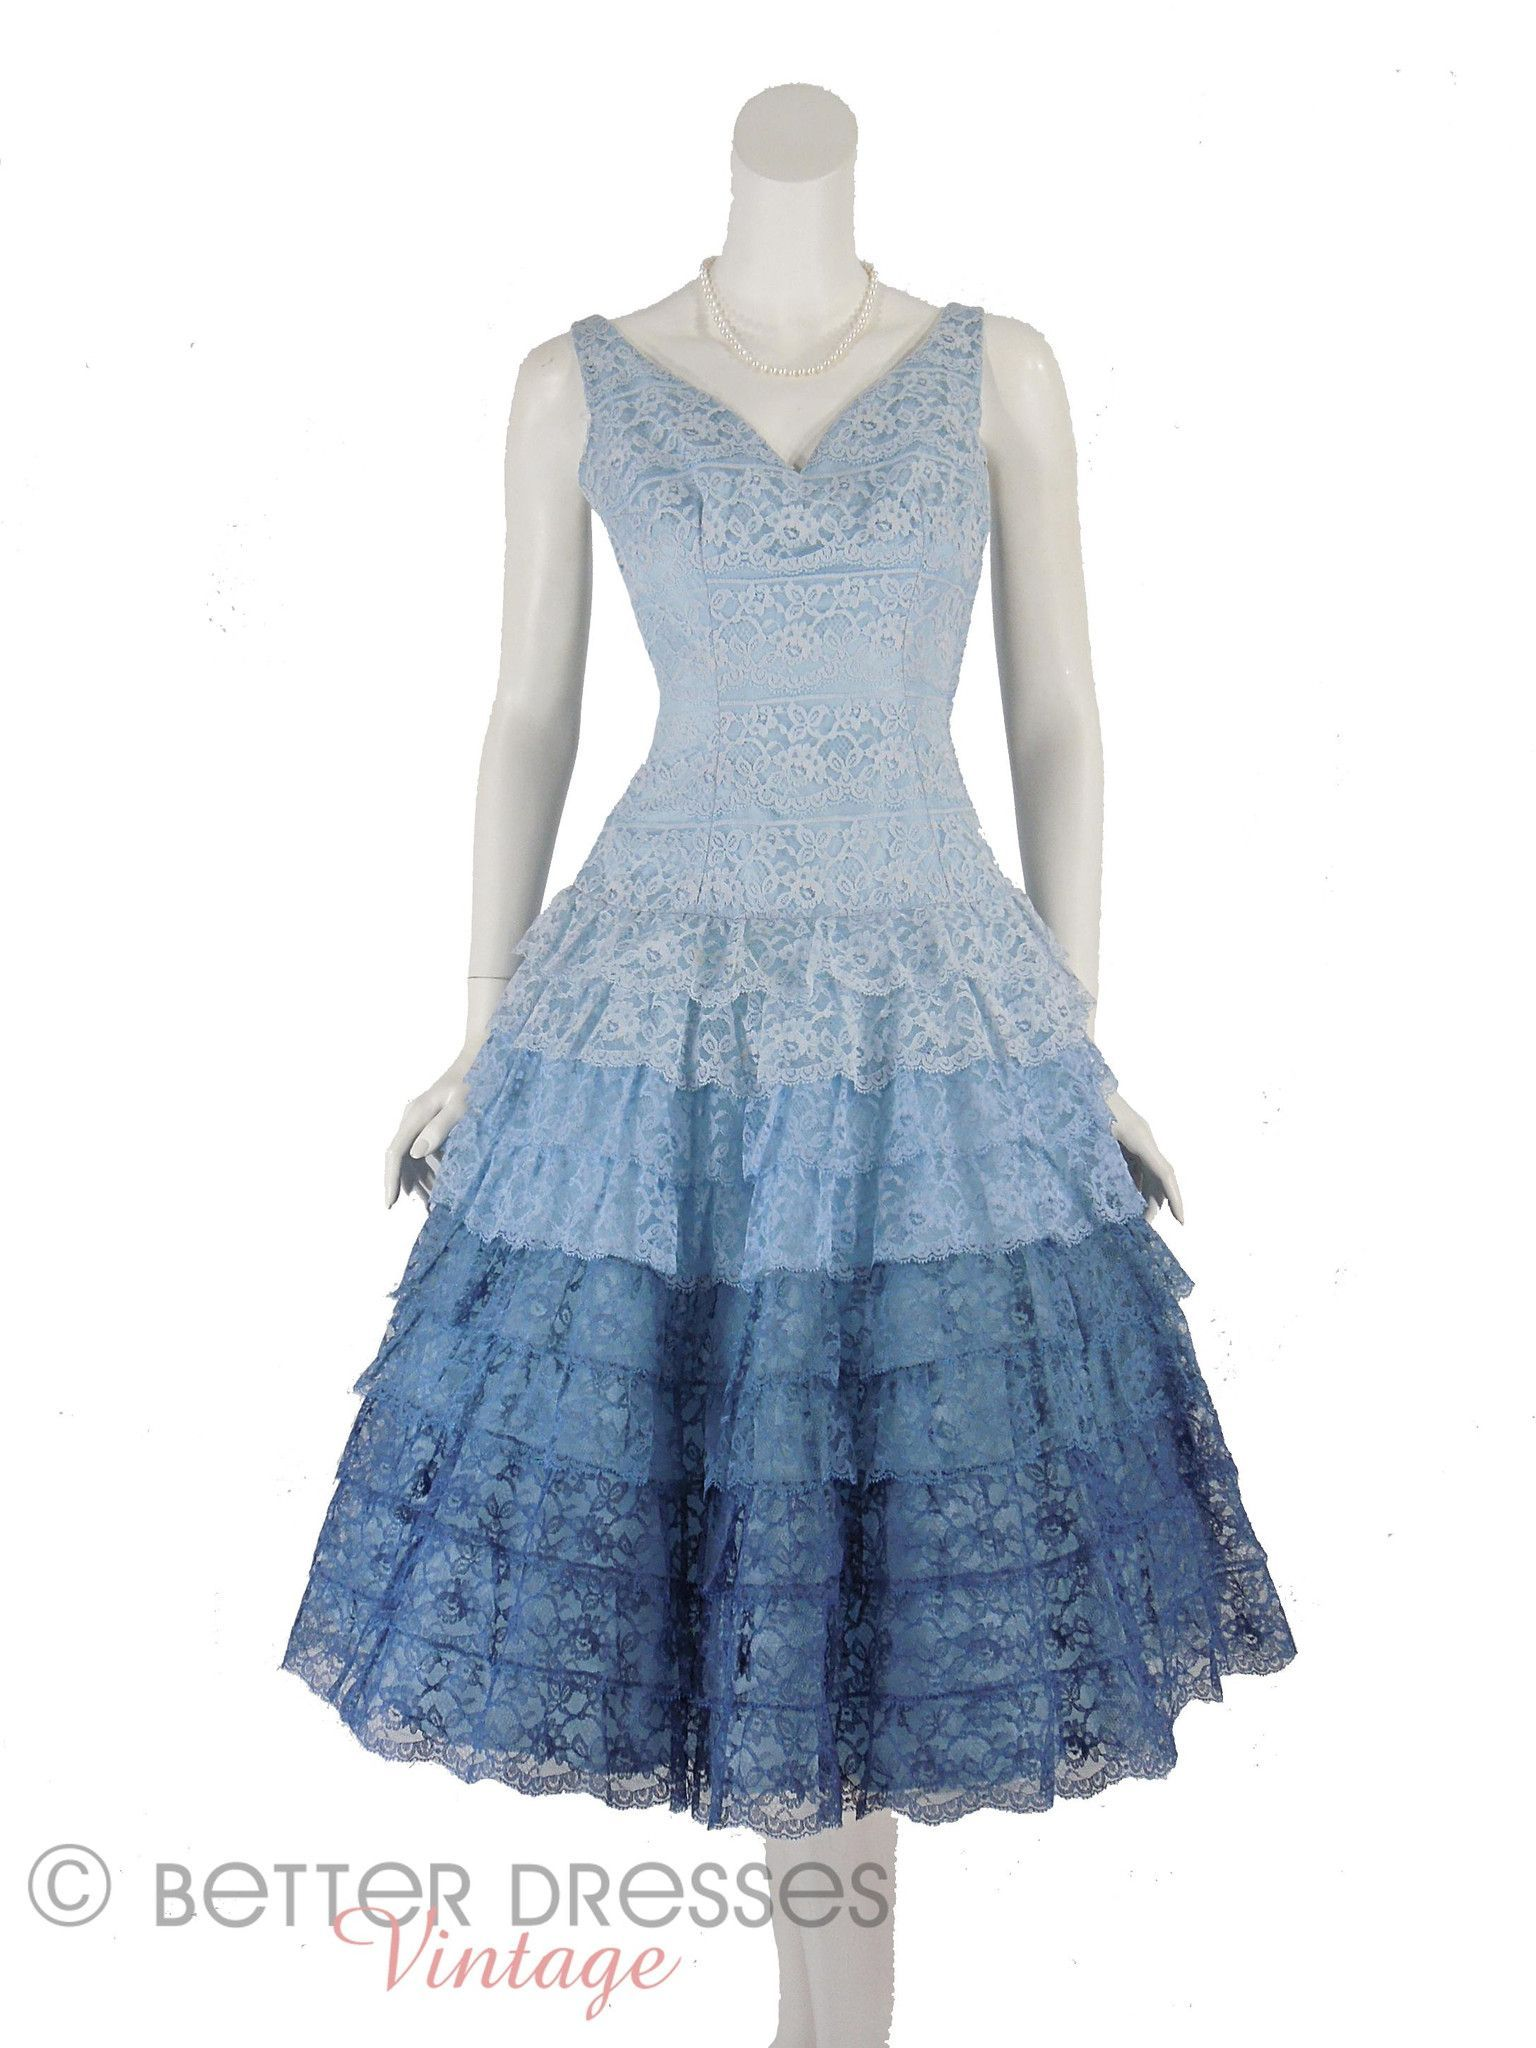 50s Blue Lace Full Skirt Party Dress - sm | Blue lace, Full skirts ...